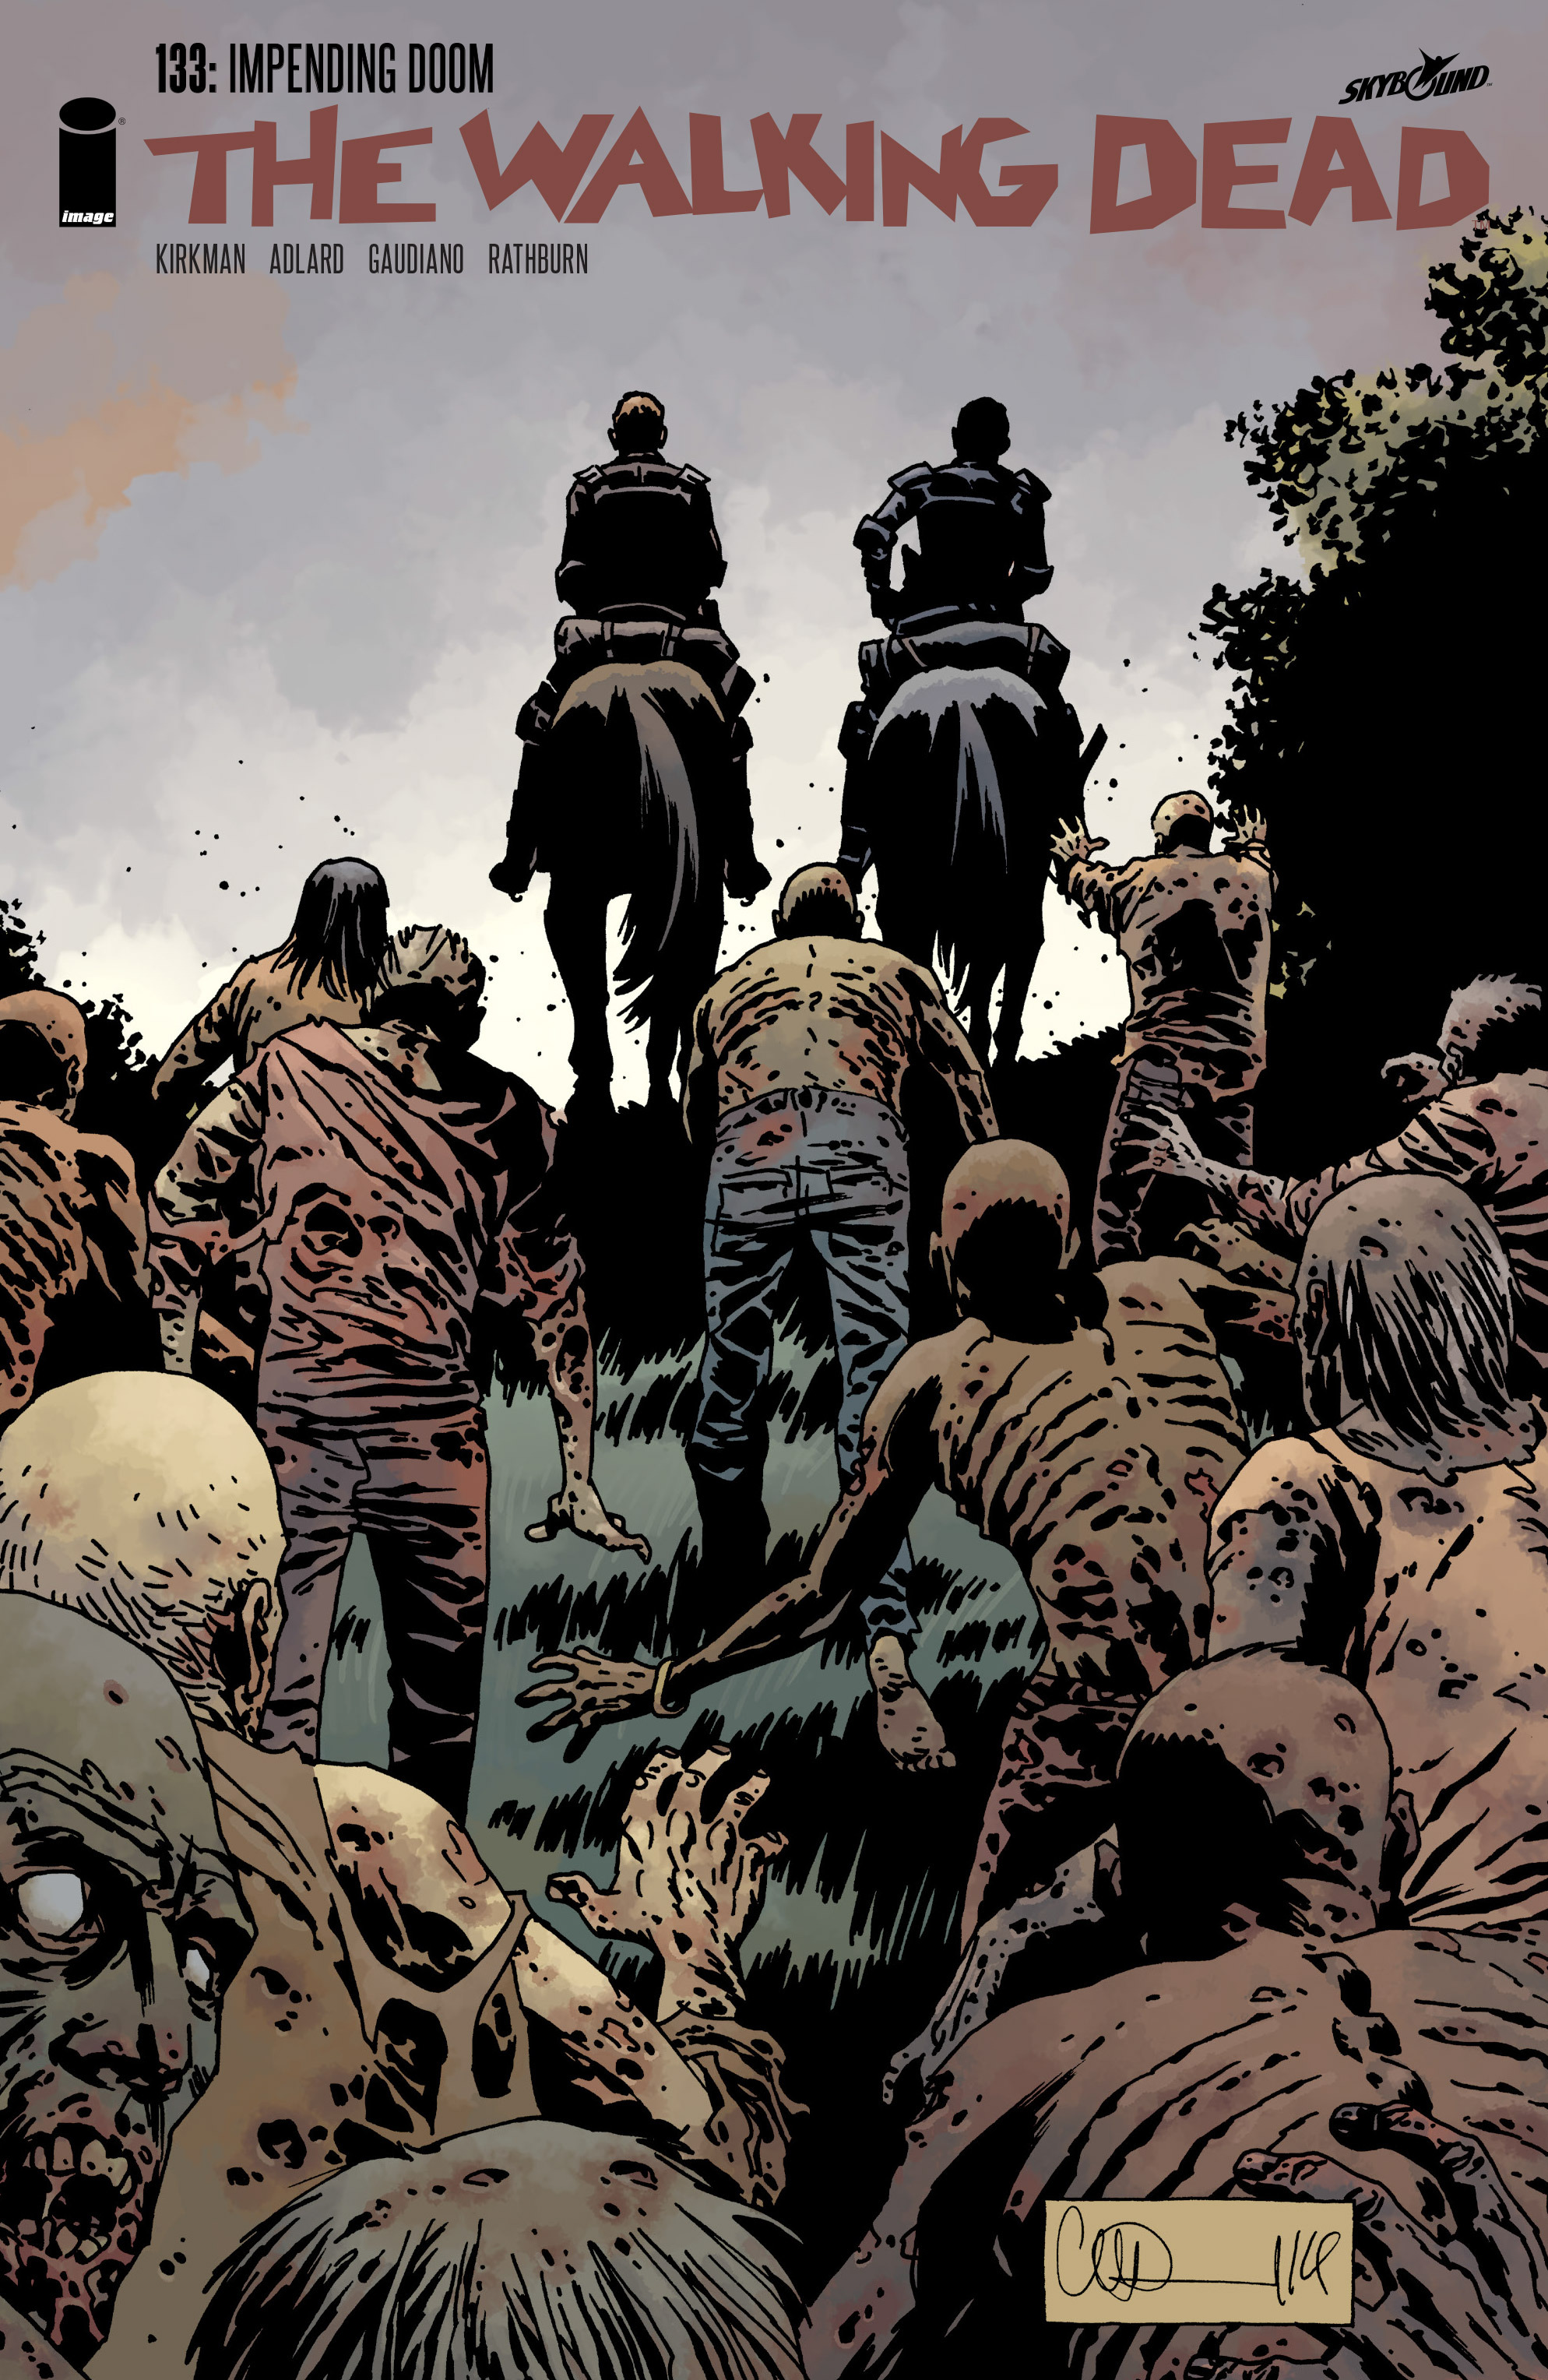 The Walking Dead 133 Page 1